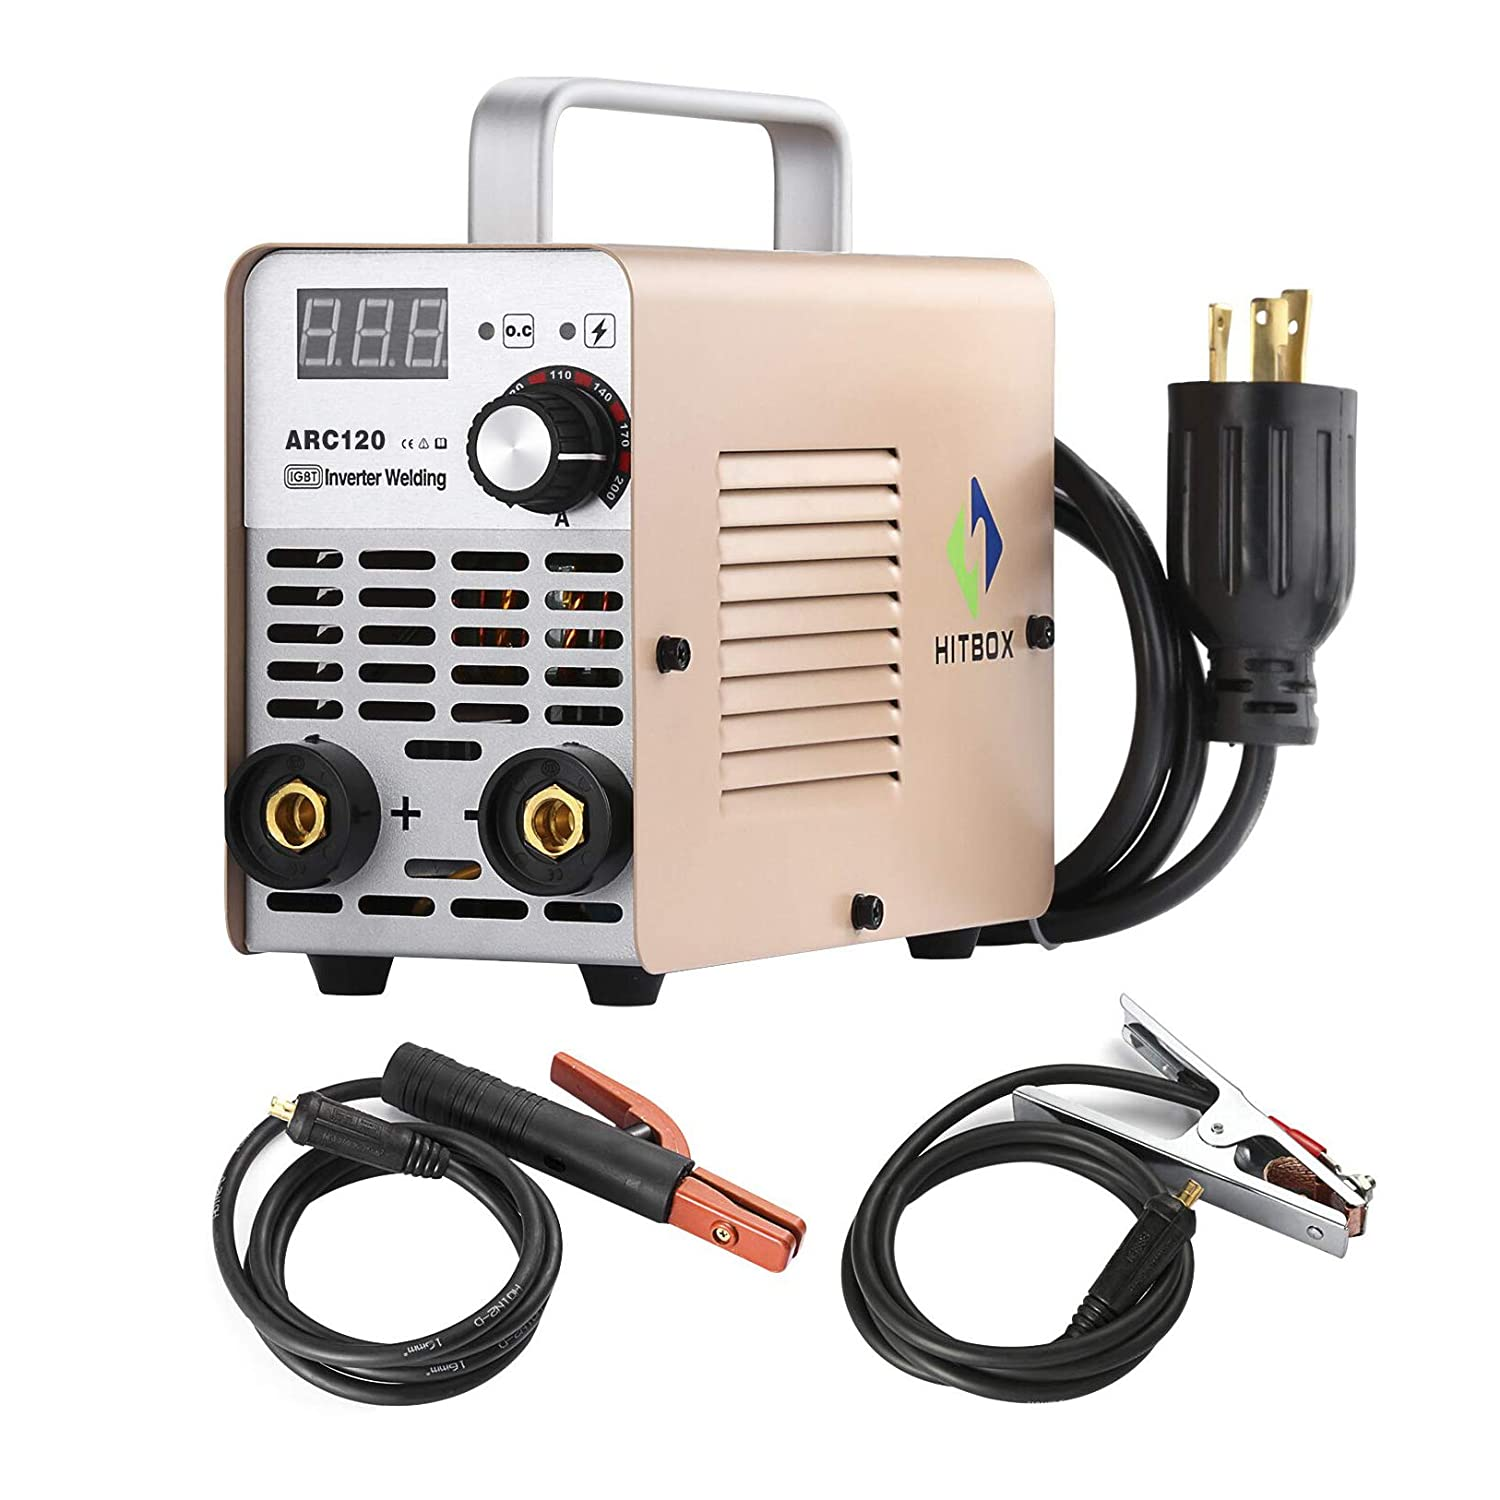 Arc Welder 120a Inverter Igbt 220v Dc Stick Welding Hobart Power Plug 230 Volt Male Plugpin Type 50 Amps Model Machine Tools Home Improvement